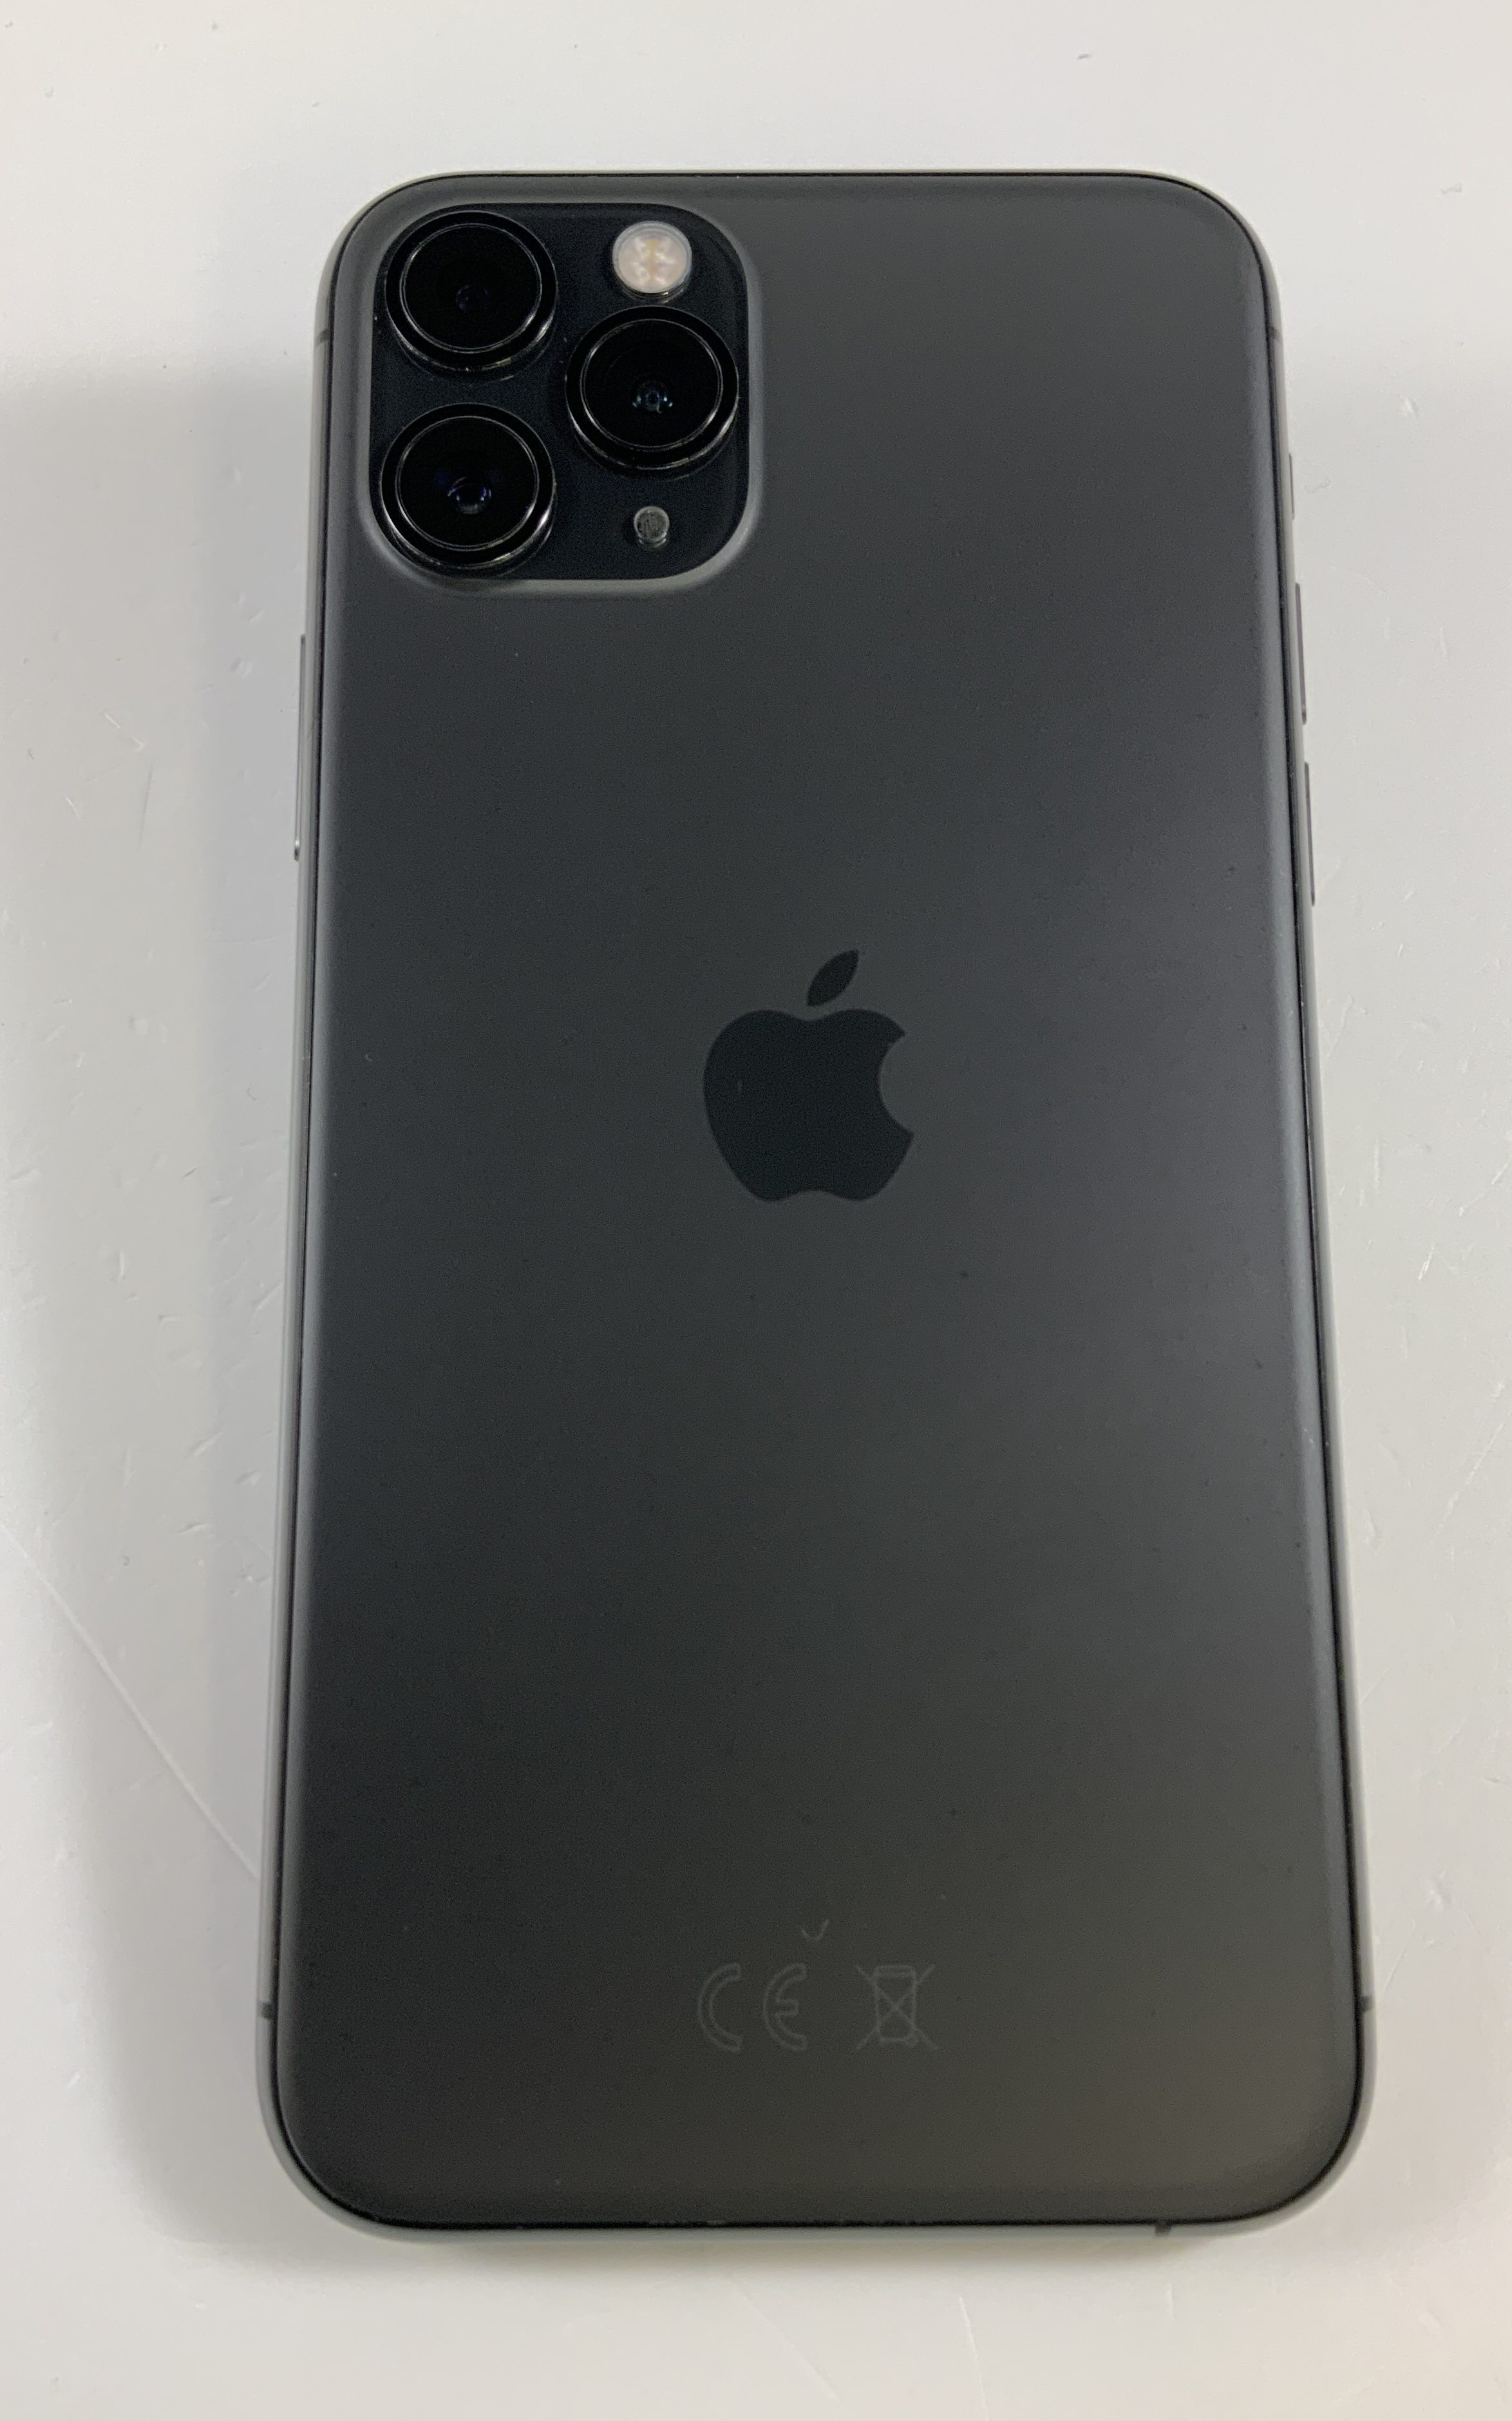 iPhone 11 Pro 256GB, 256GB, Space Gray, immagine 2